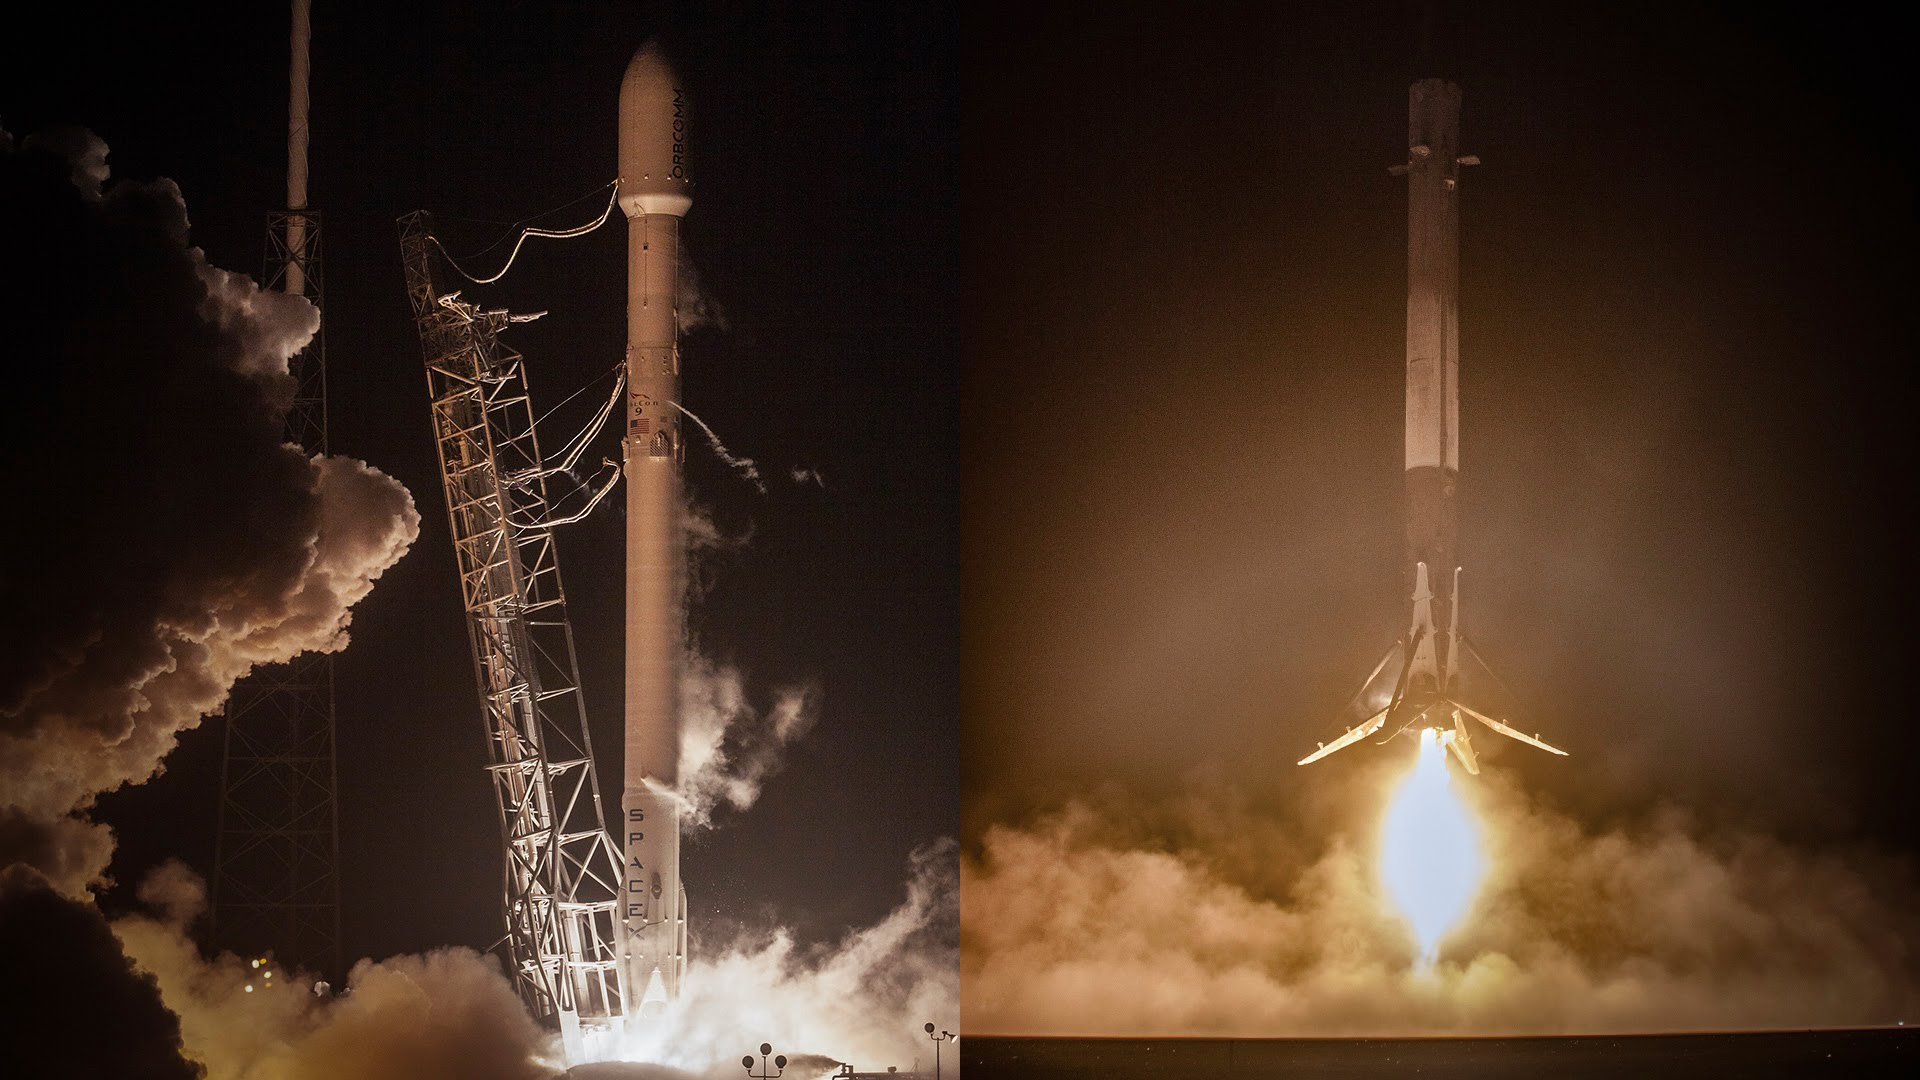 SpaceX releases new video of Falcon 9 launch and landing / Boing Boing